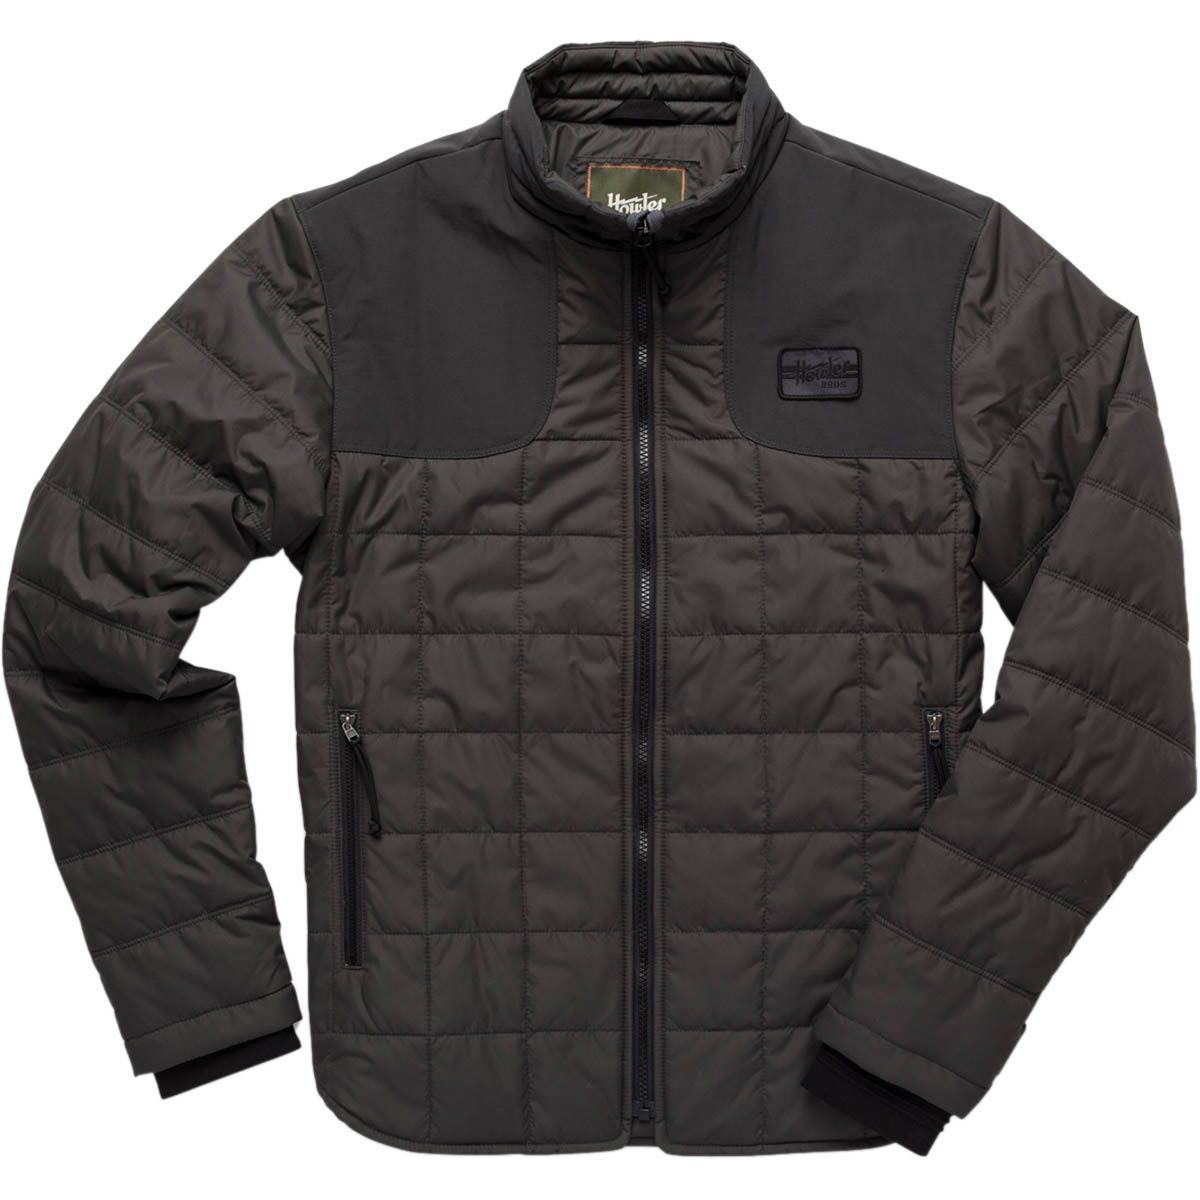 Howler Brothers Merlin Jacket - Blackout, X-Large